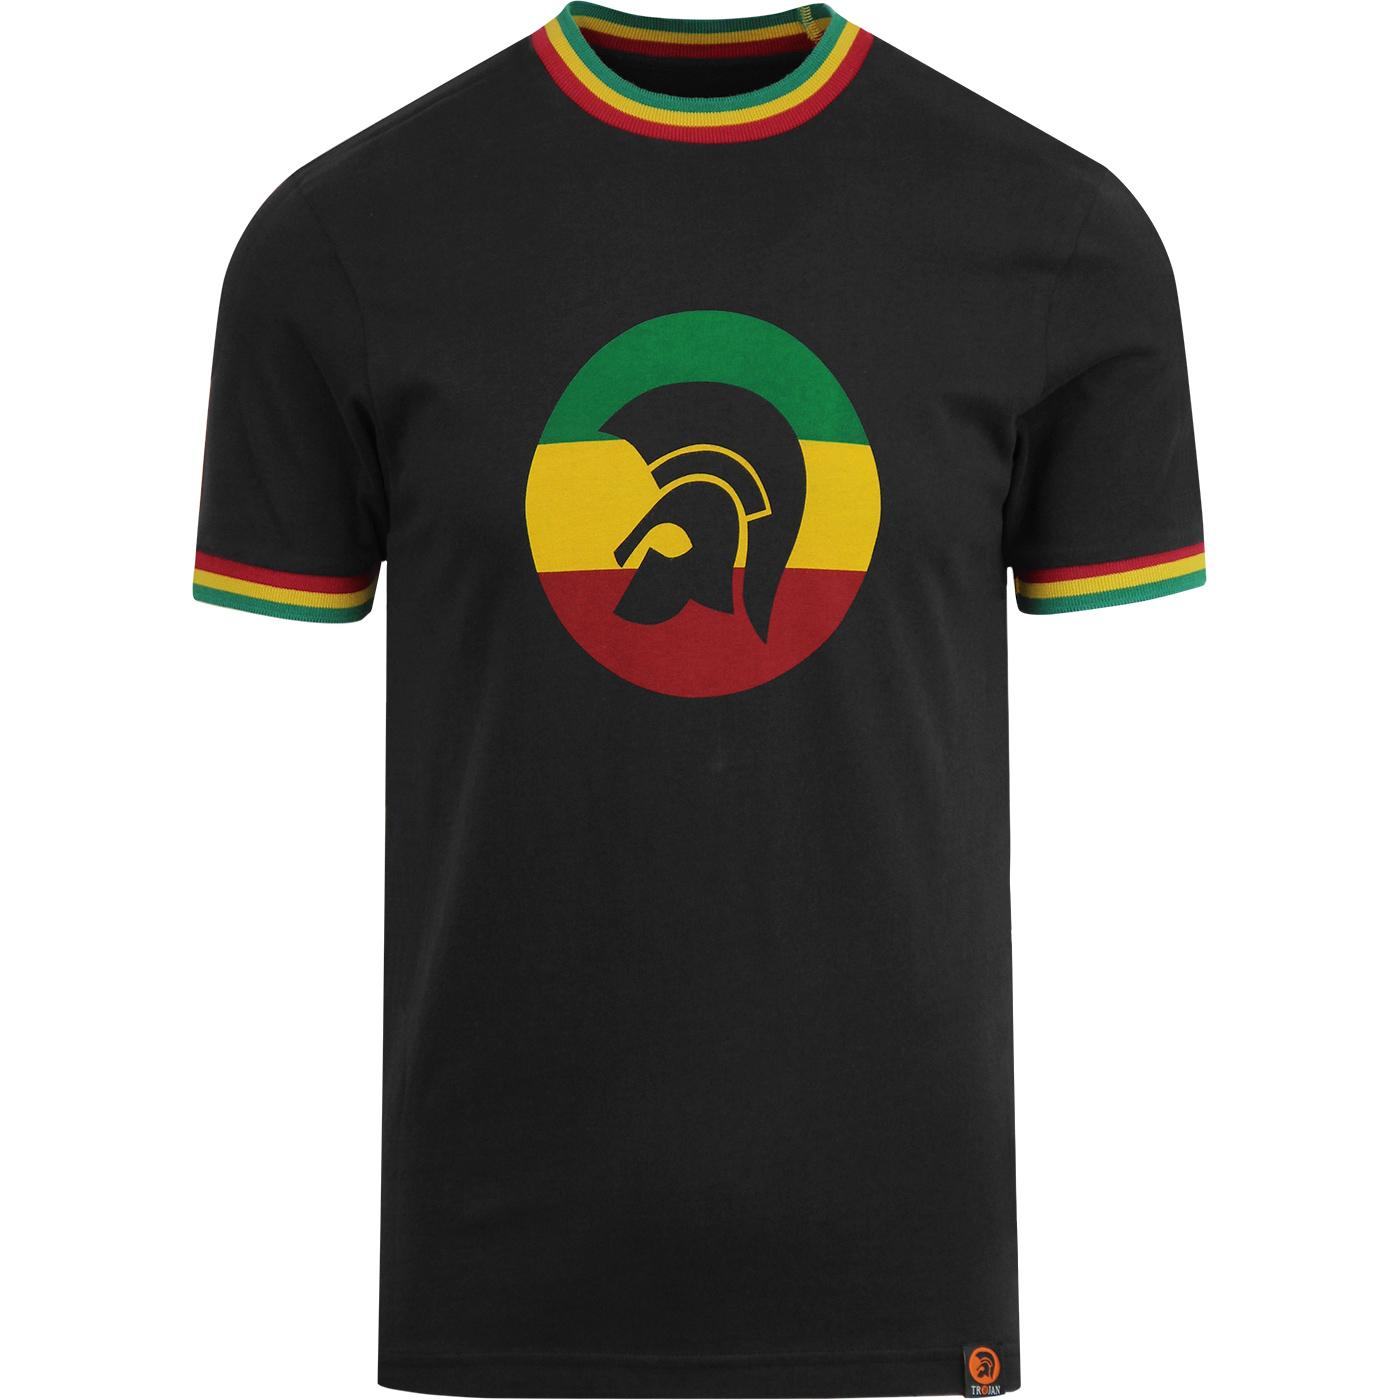 TROJAN RECORDS Retro Rasta Flag Stripe Ringer Tee